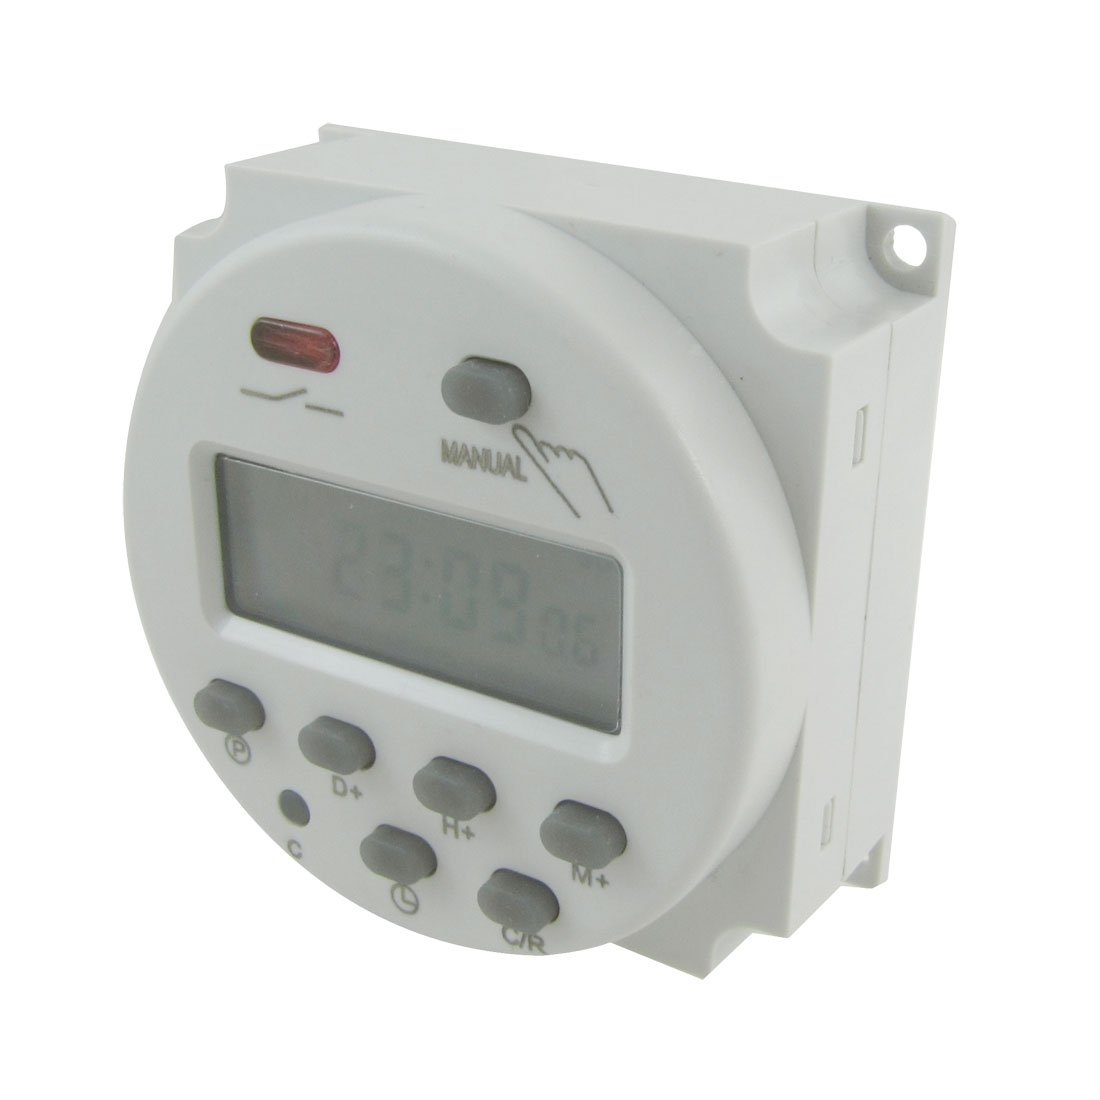 Uxcell DC V Digital LCD Power Programmable Timer Time Switch - 12 volt on off relay